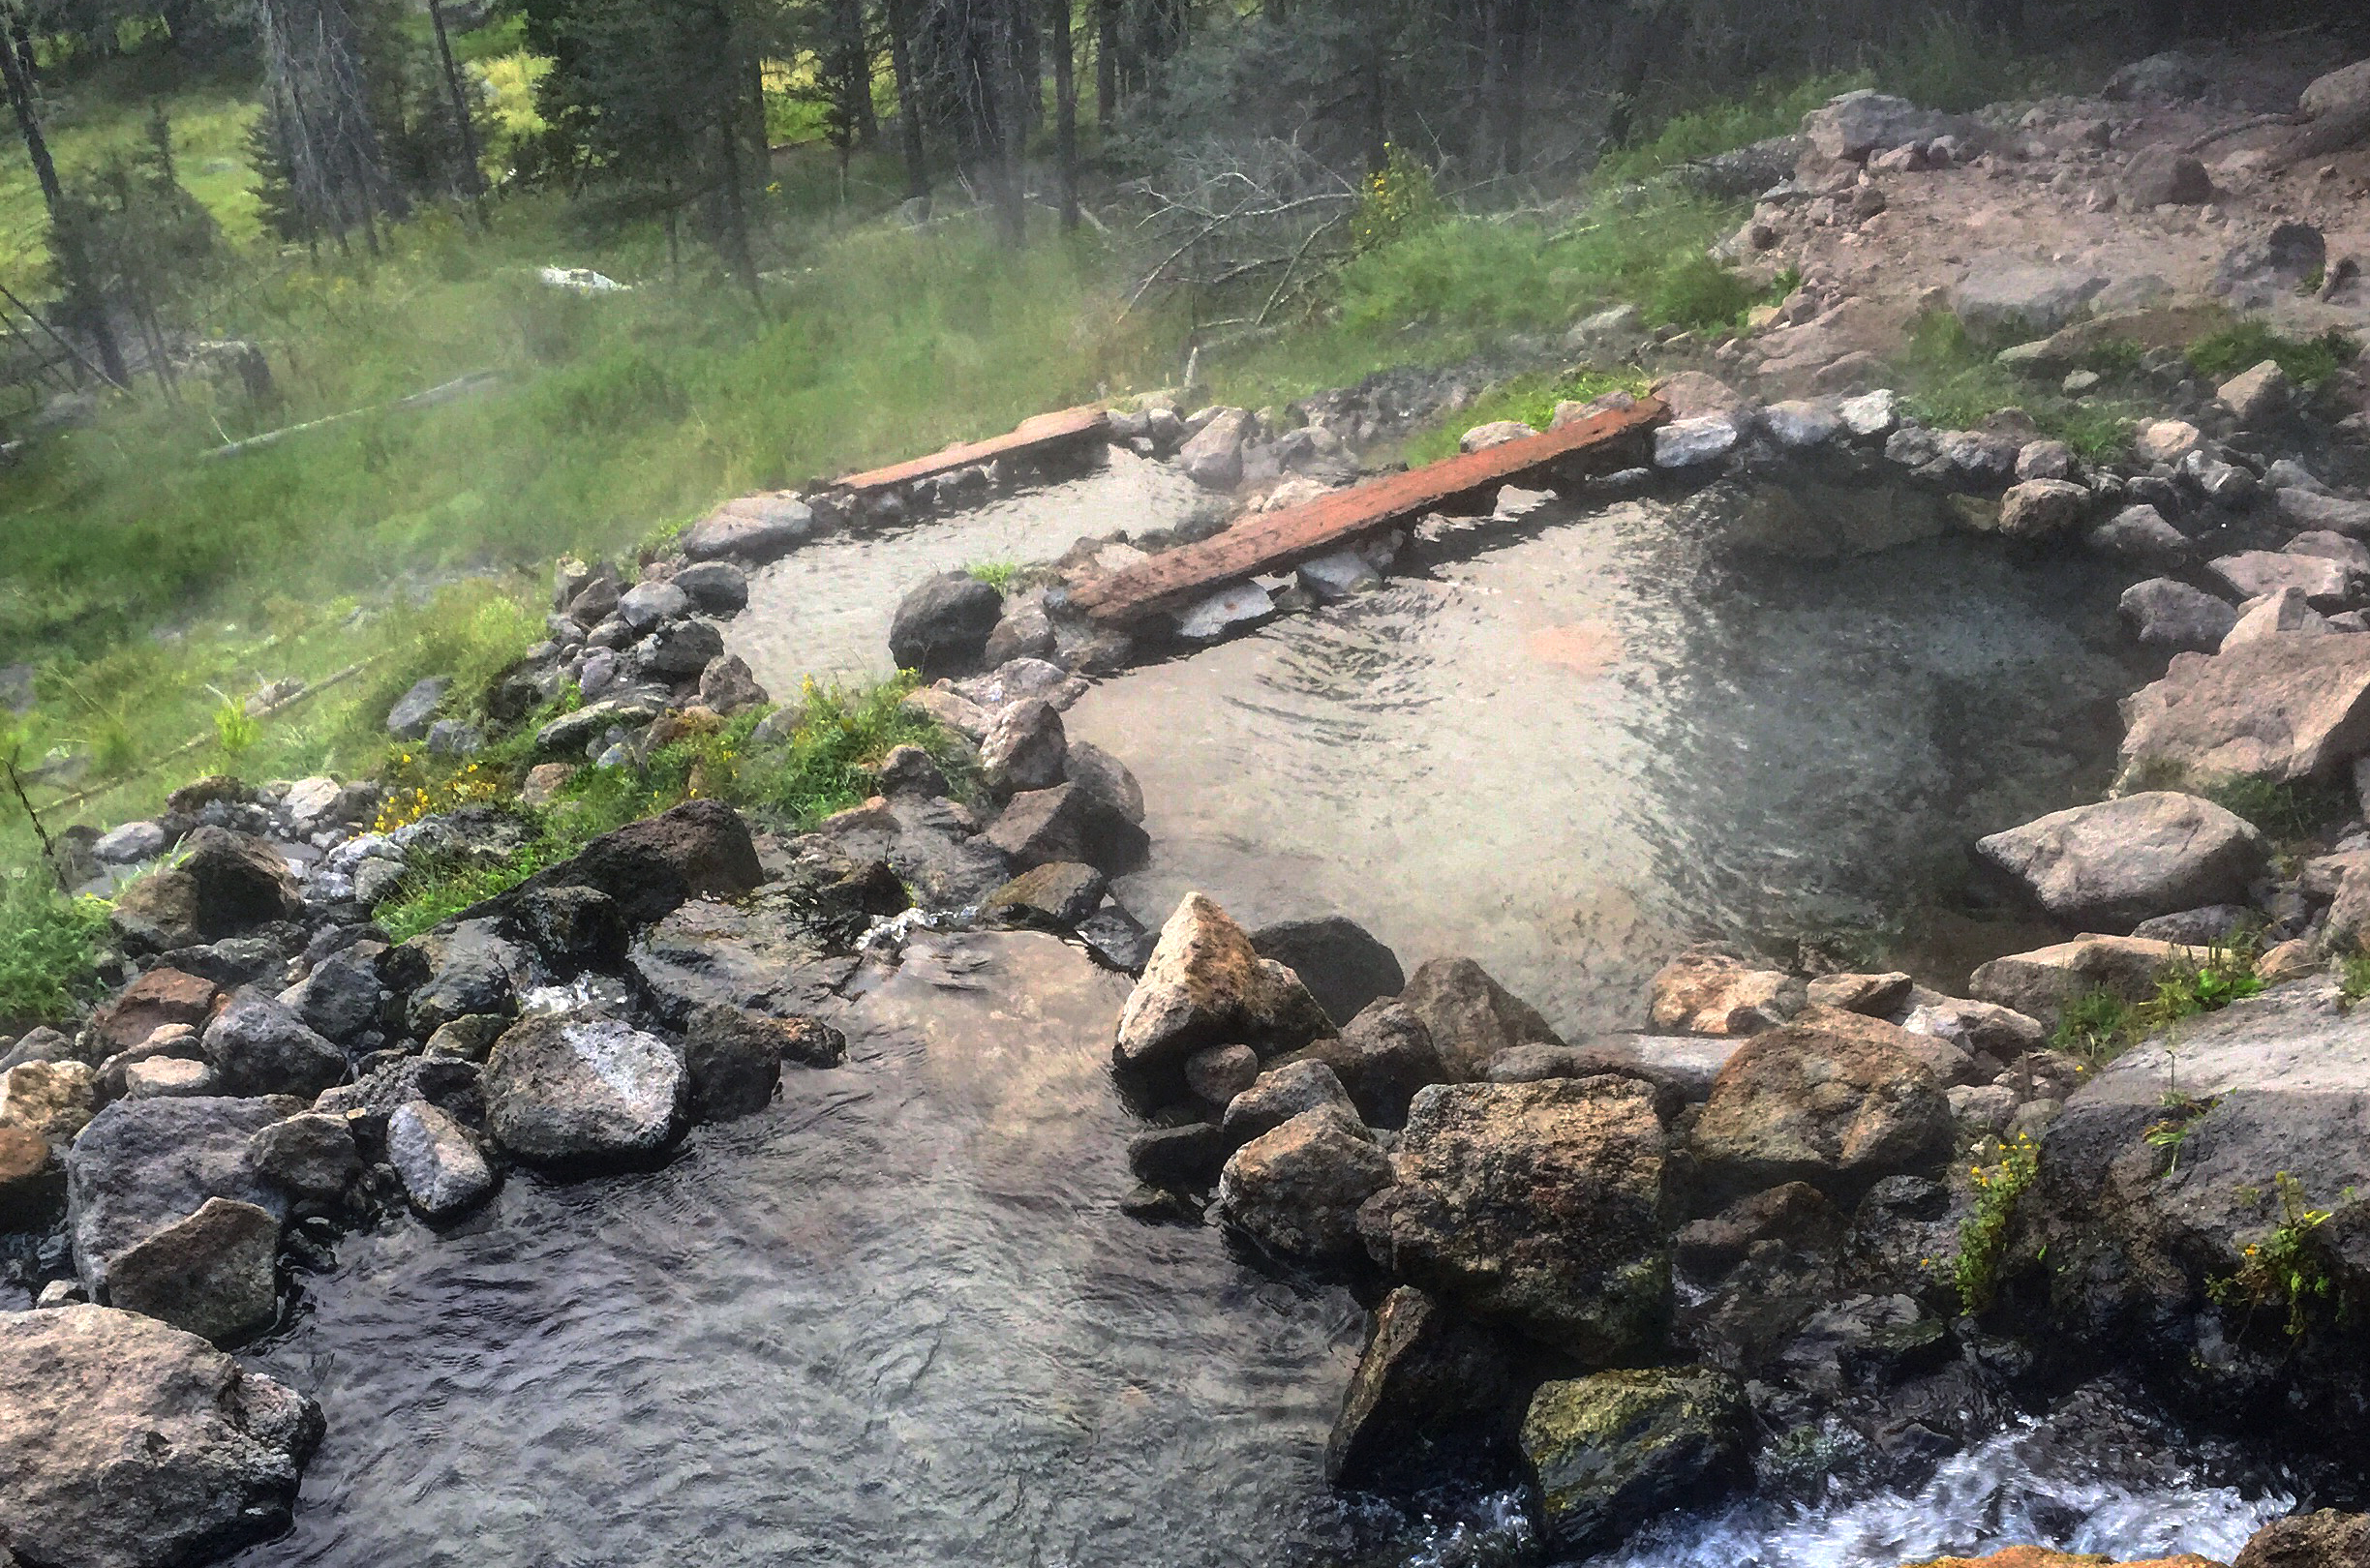 San Antonio Hot Springs in the Jemez mountains of Northern New Mexico